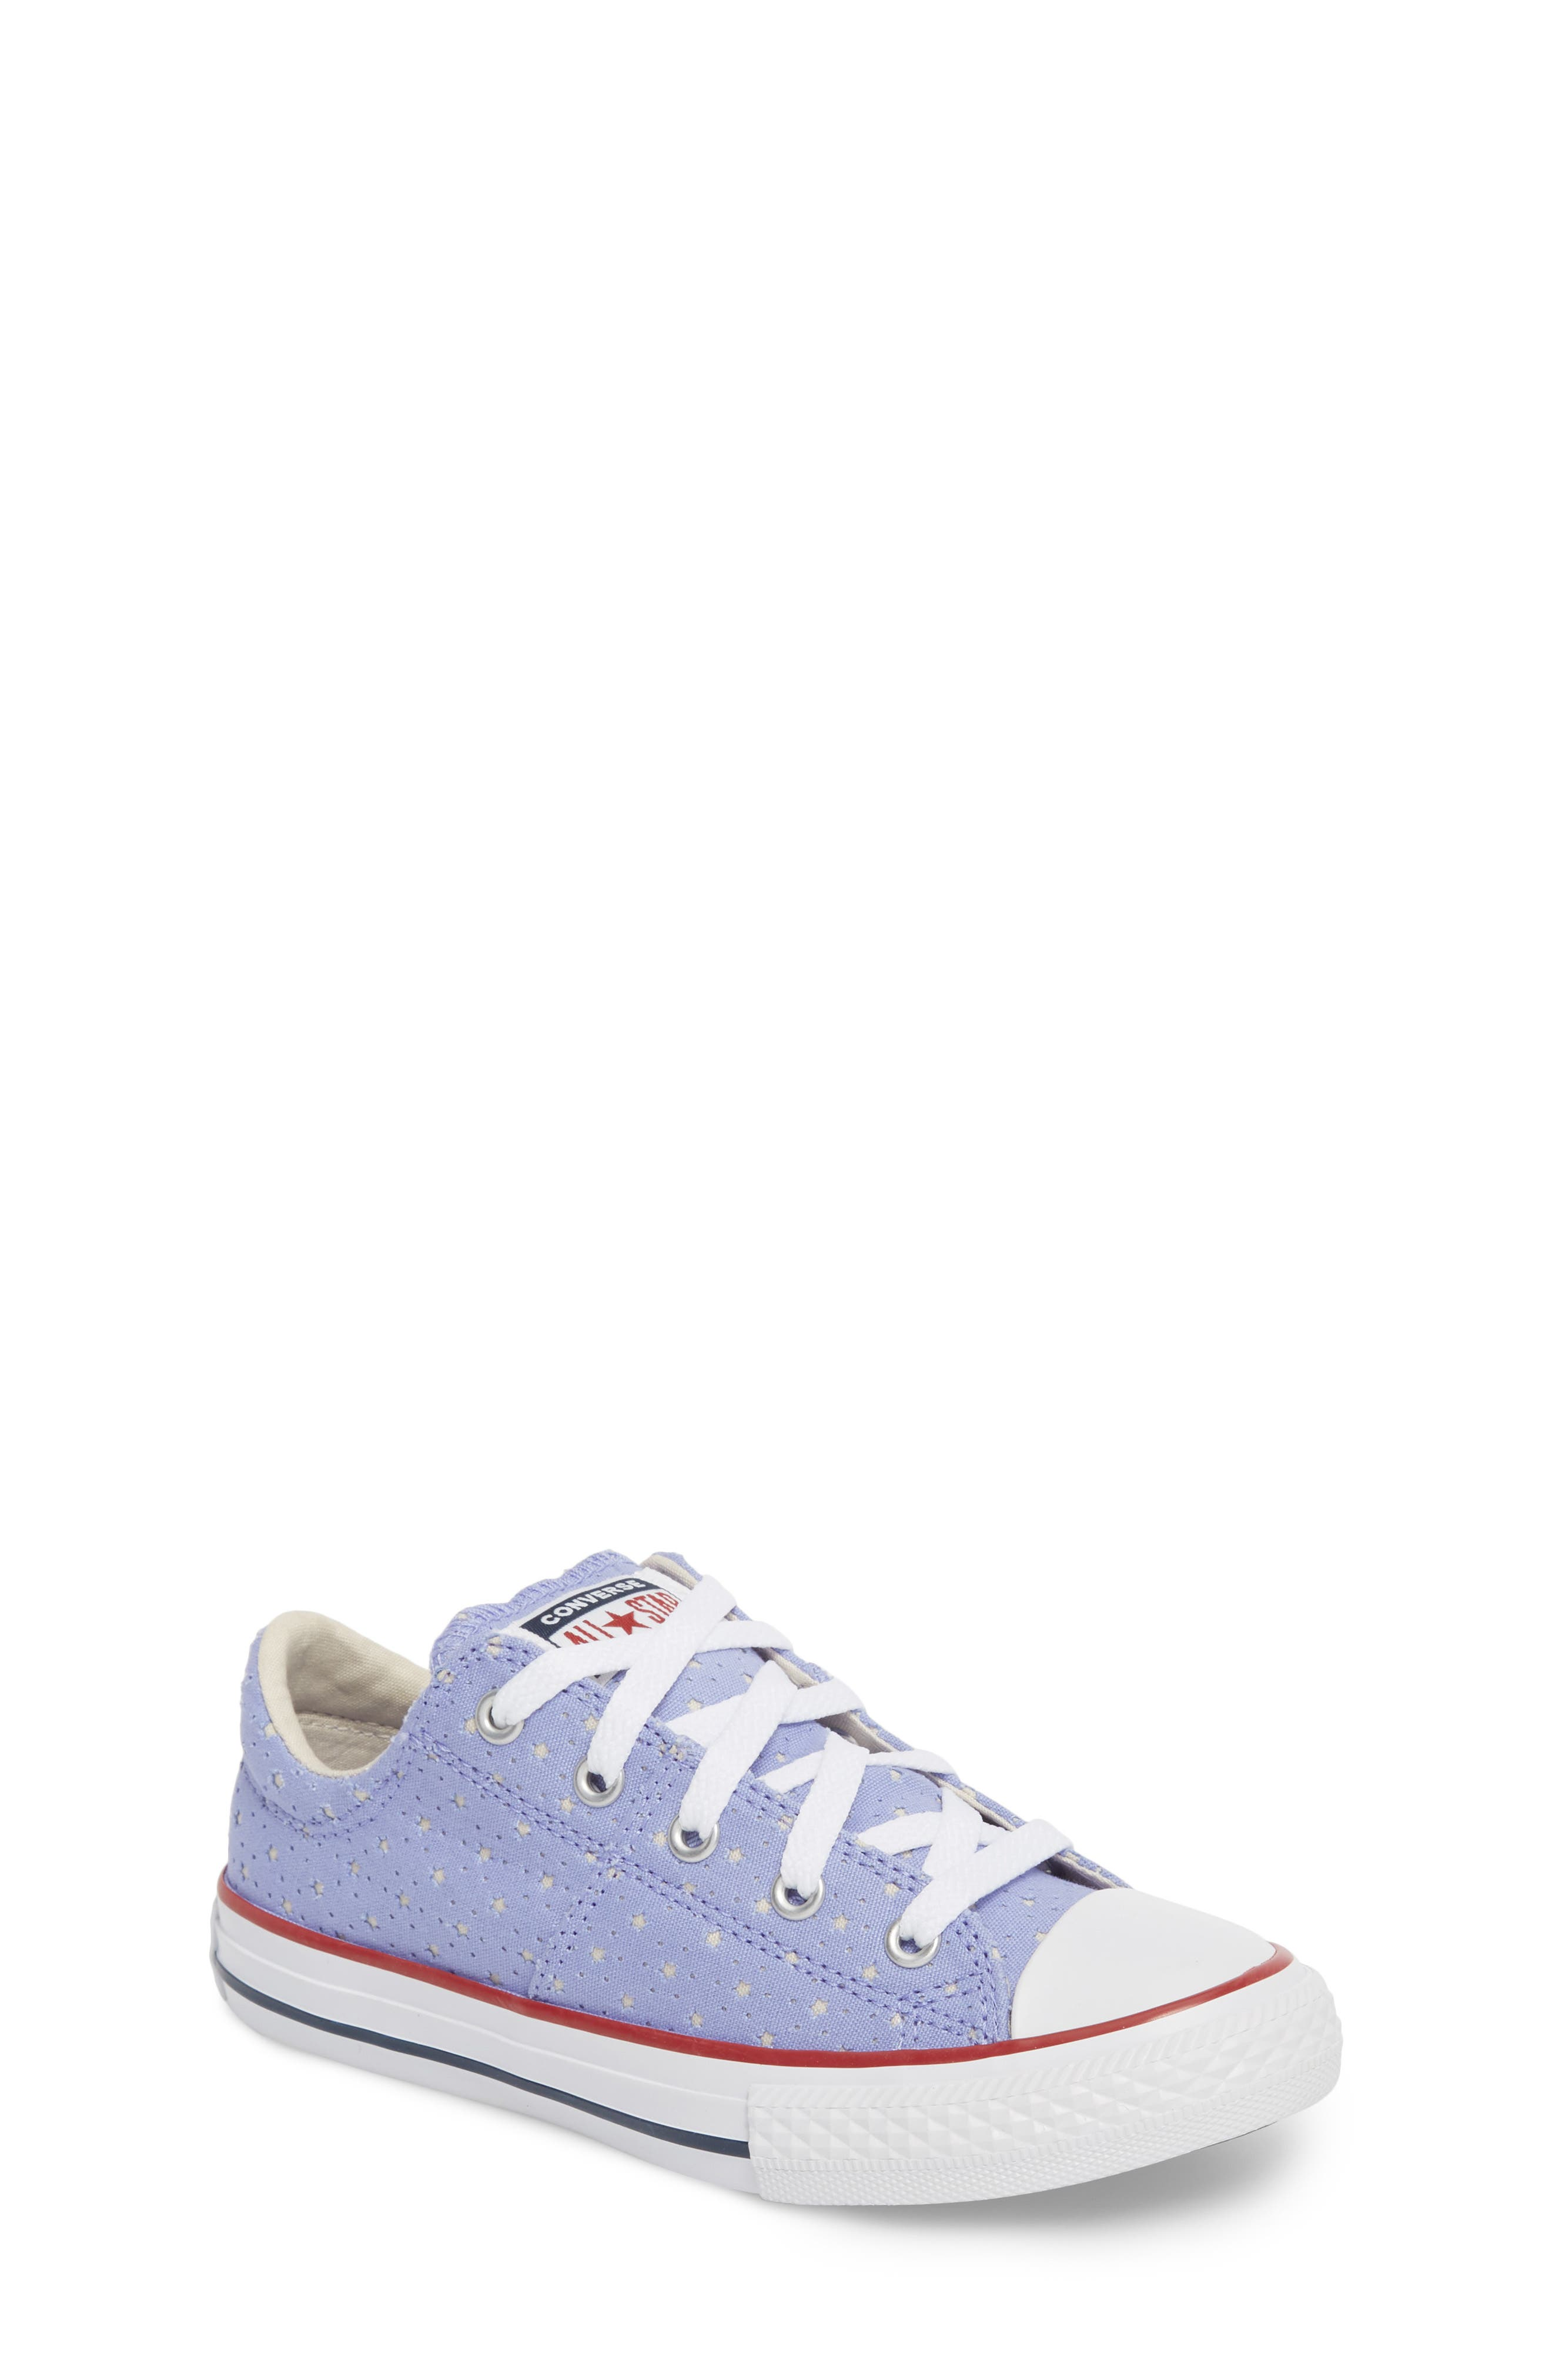 Converse Chuck Taylor® All Star® Madison Sneaker (Baby, Walker, Toddler, Little Kid & Big Kid)